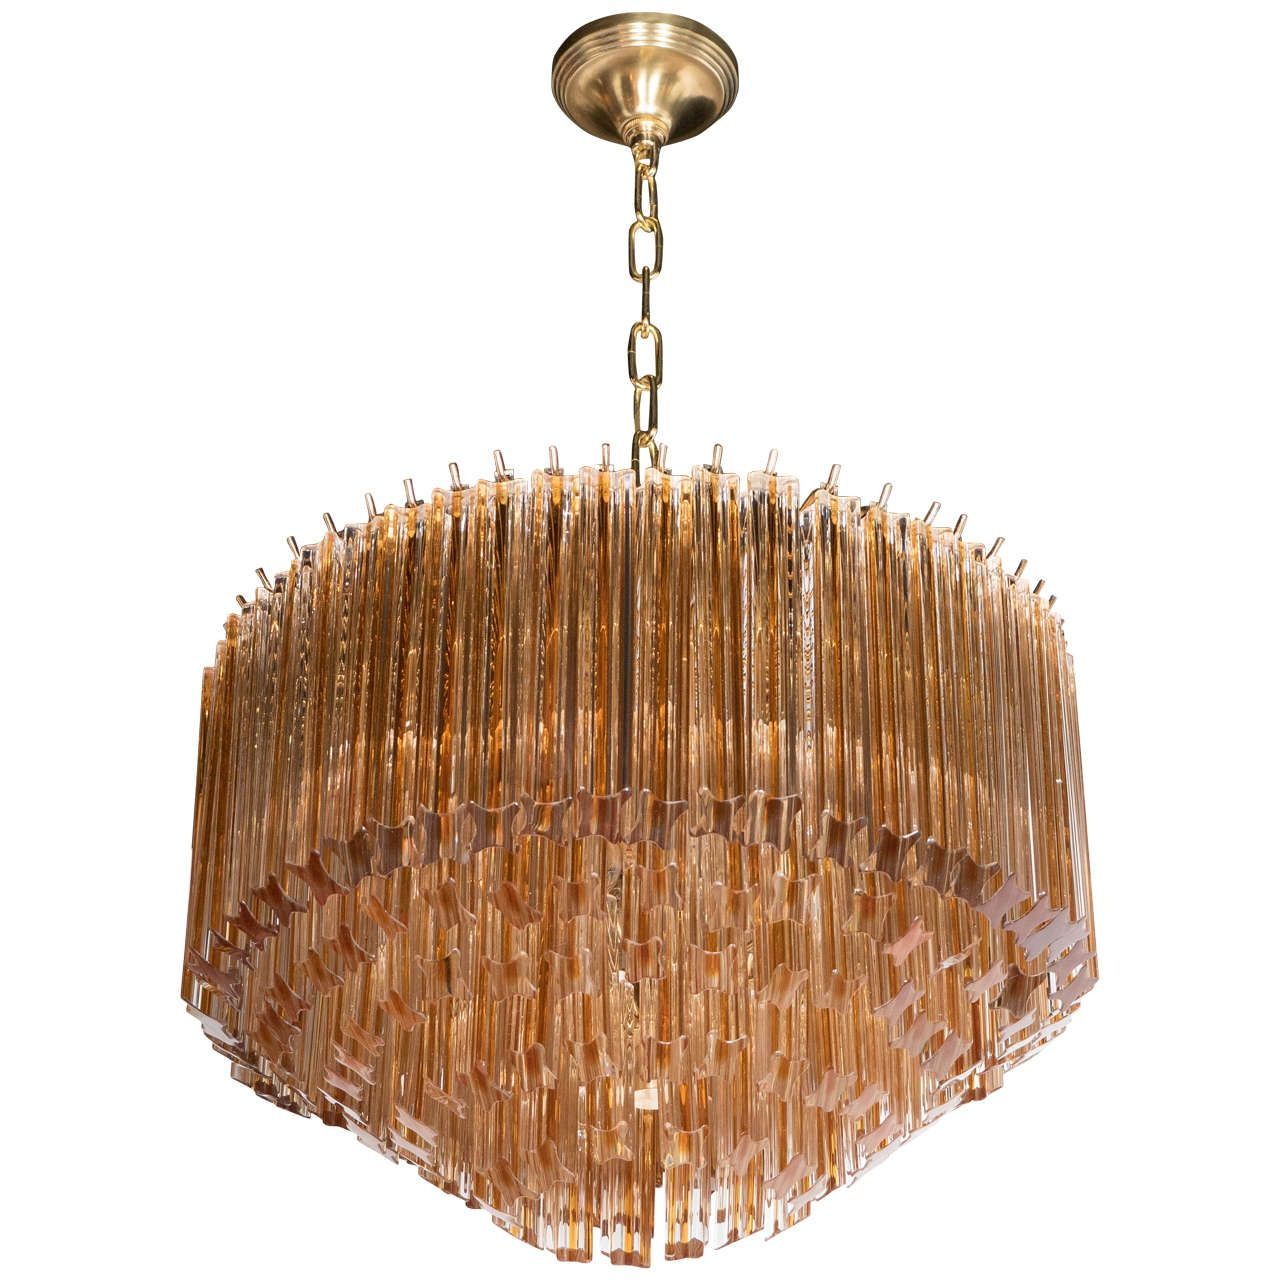 Mid-Century Modernist Five-Tier Cut Triedre Camer Chandelier in Amber and Clear | From a unique collection of antique and modern chandeliers and pendants  at https://www.1stdibs.com/furniture/lighting/chandeliers-pendant-lights/